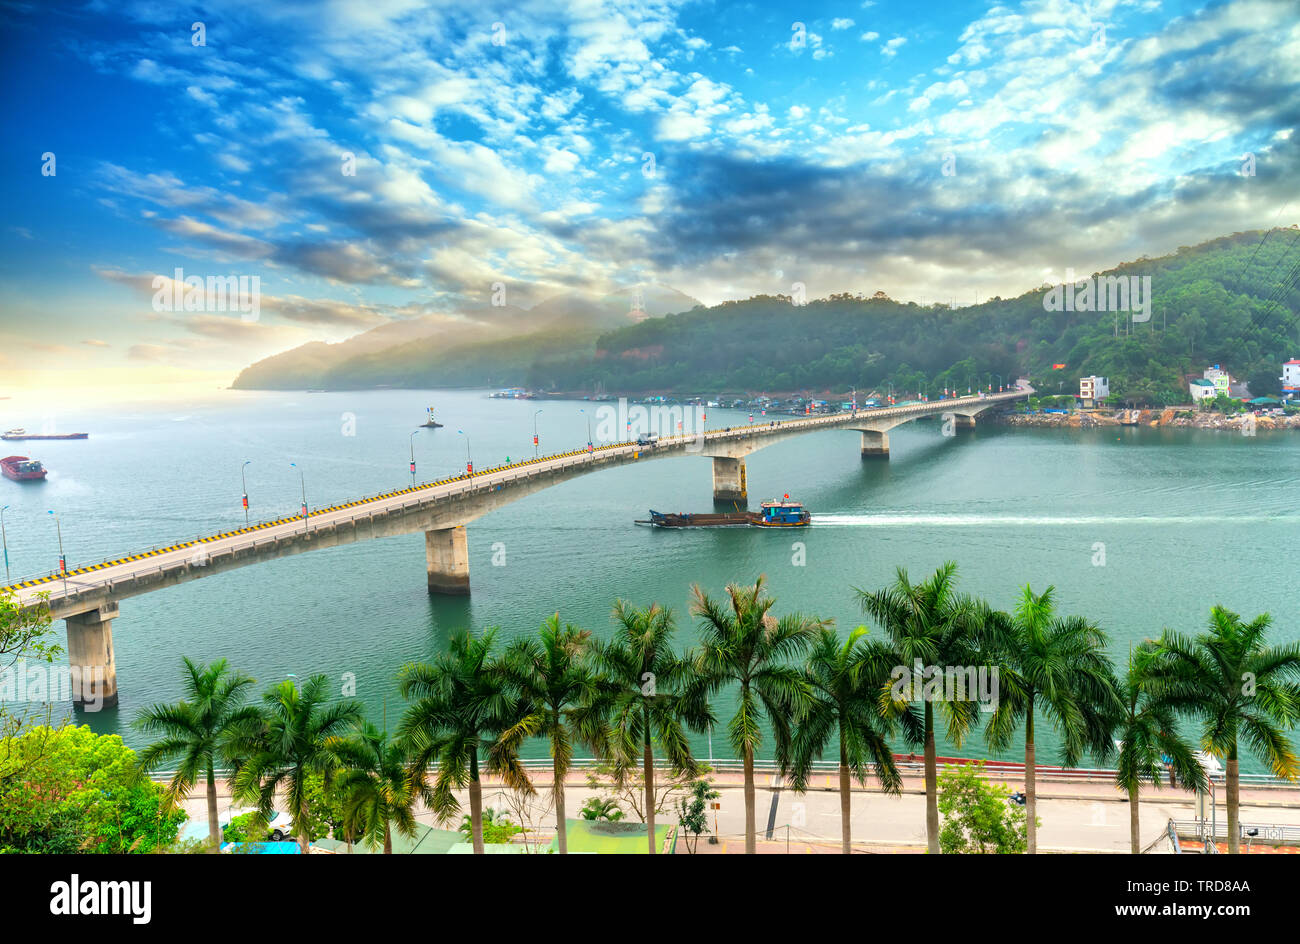 Van Don bridge connects Cam Pha City to Van Don peninsula in Quang Ninh, Vietnam Stock Photo